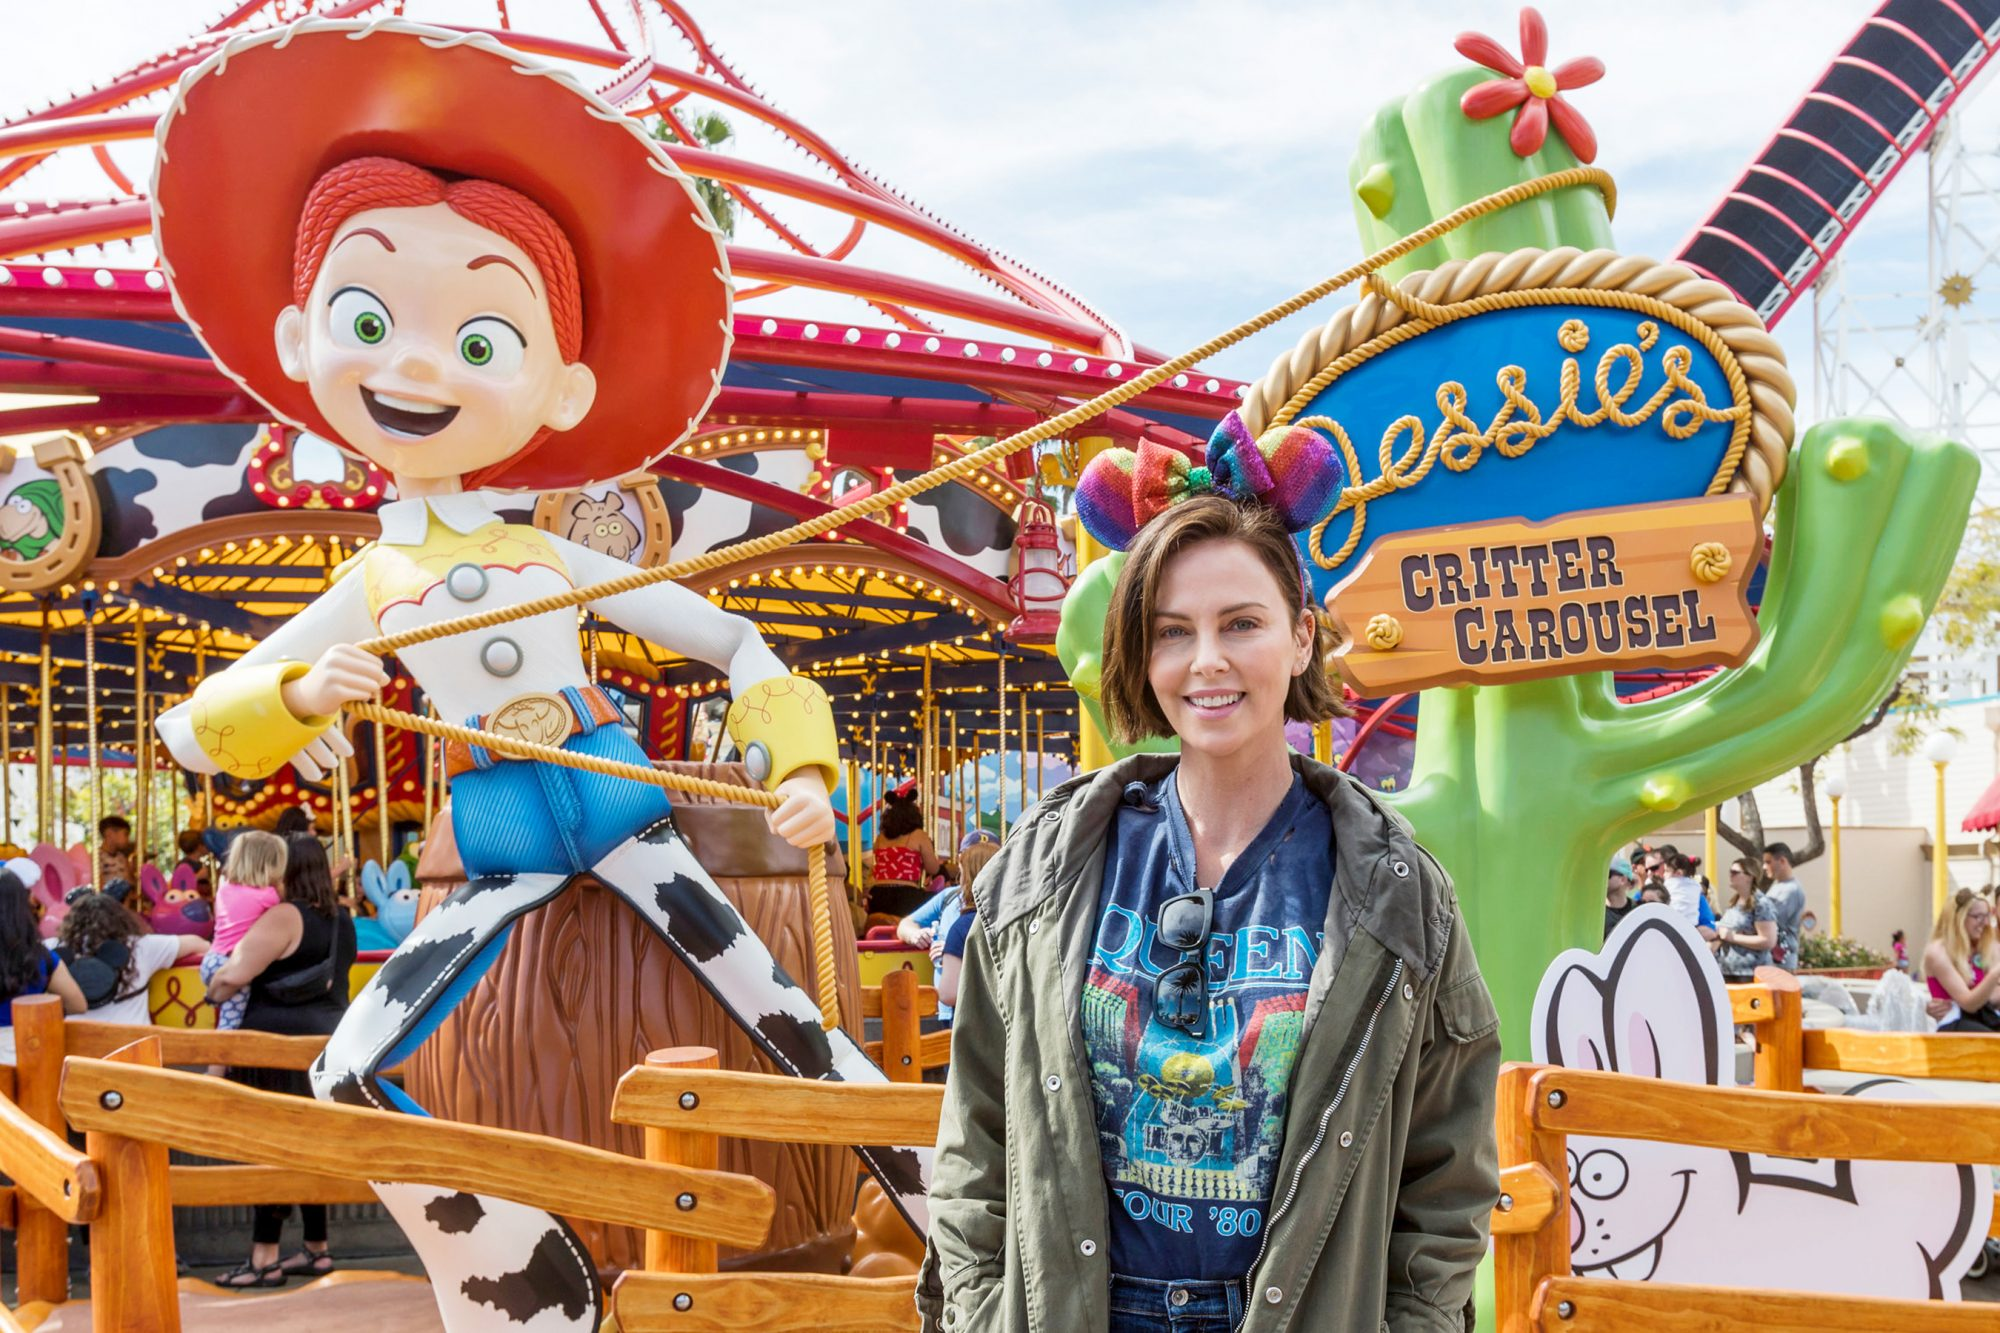 Actress Charlize Theron Poses in Front of Jessie's Critter Carousel at Disney California Adventure Park